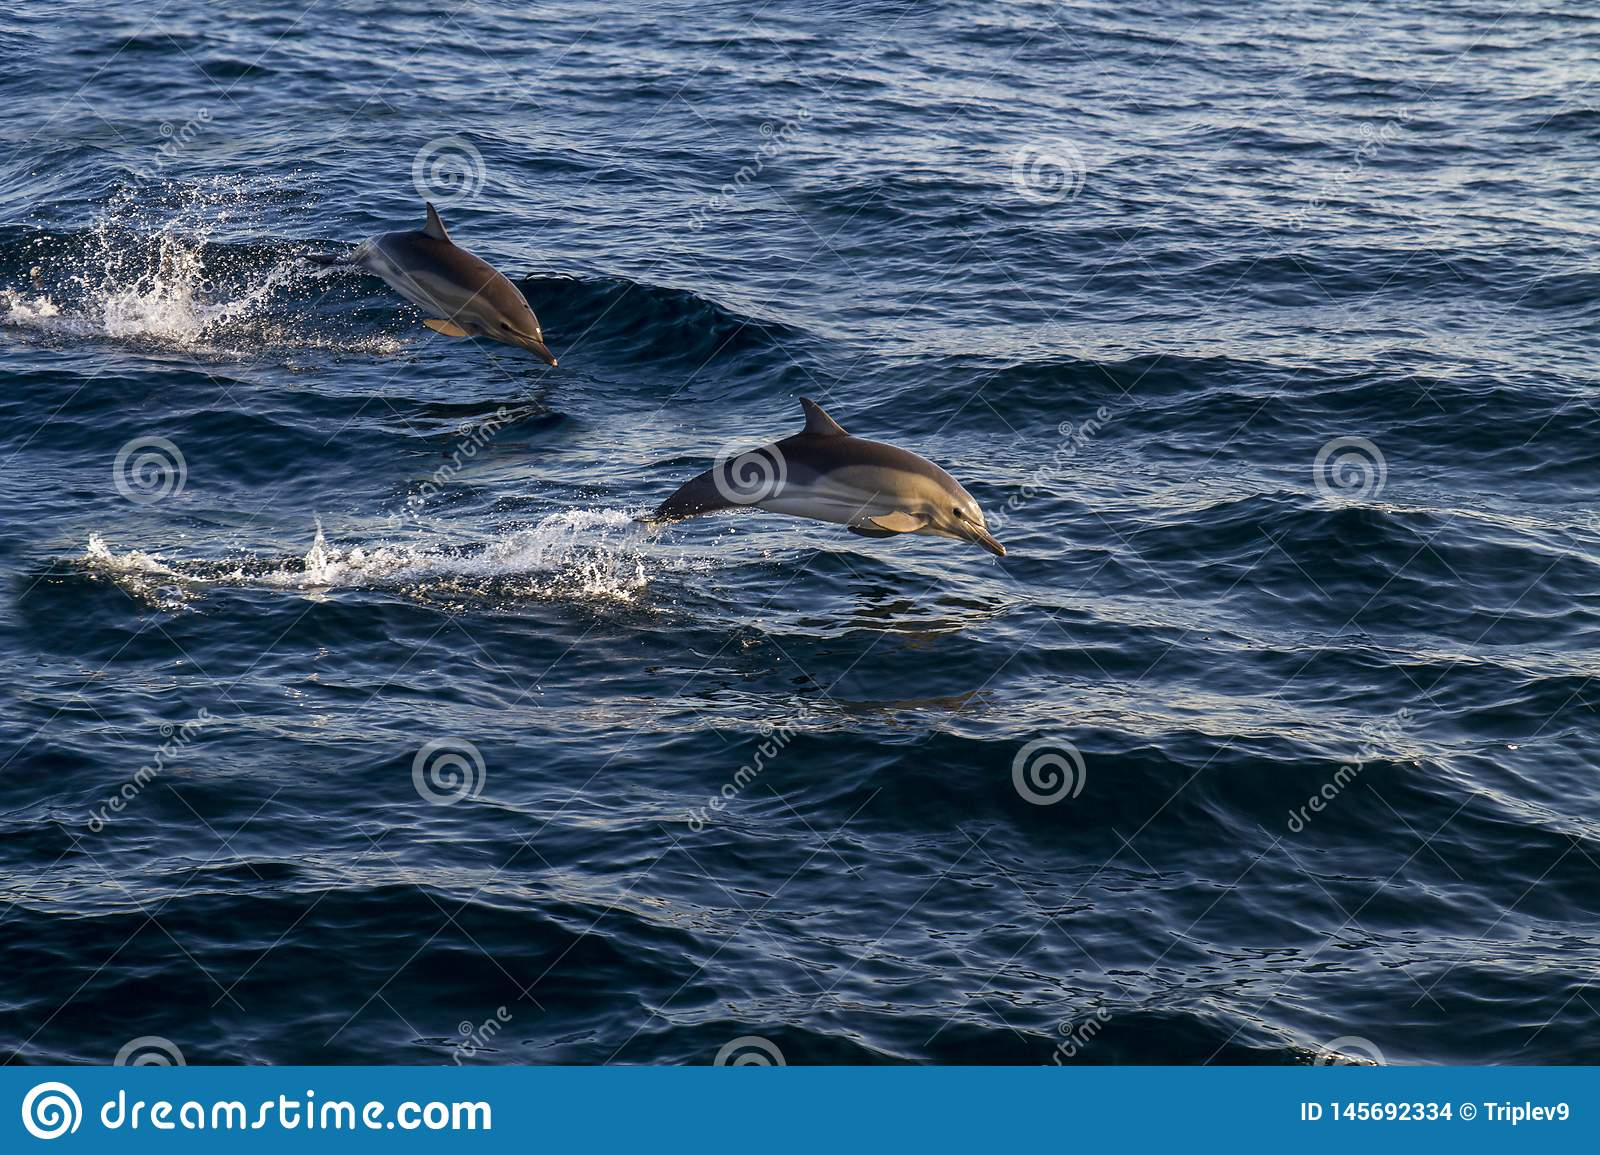 Dolphins jumping over the waves.